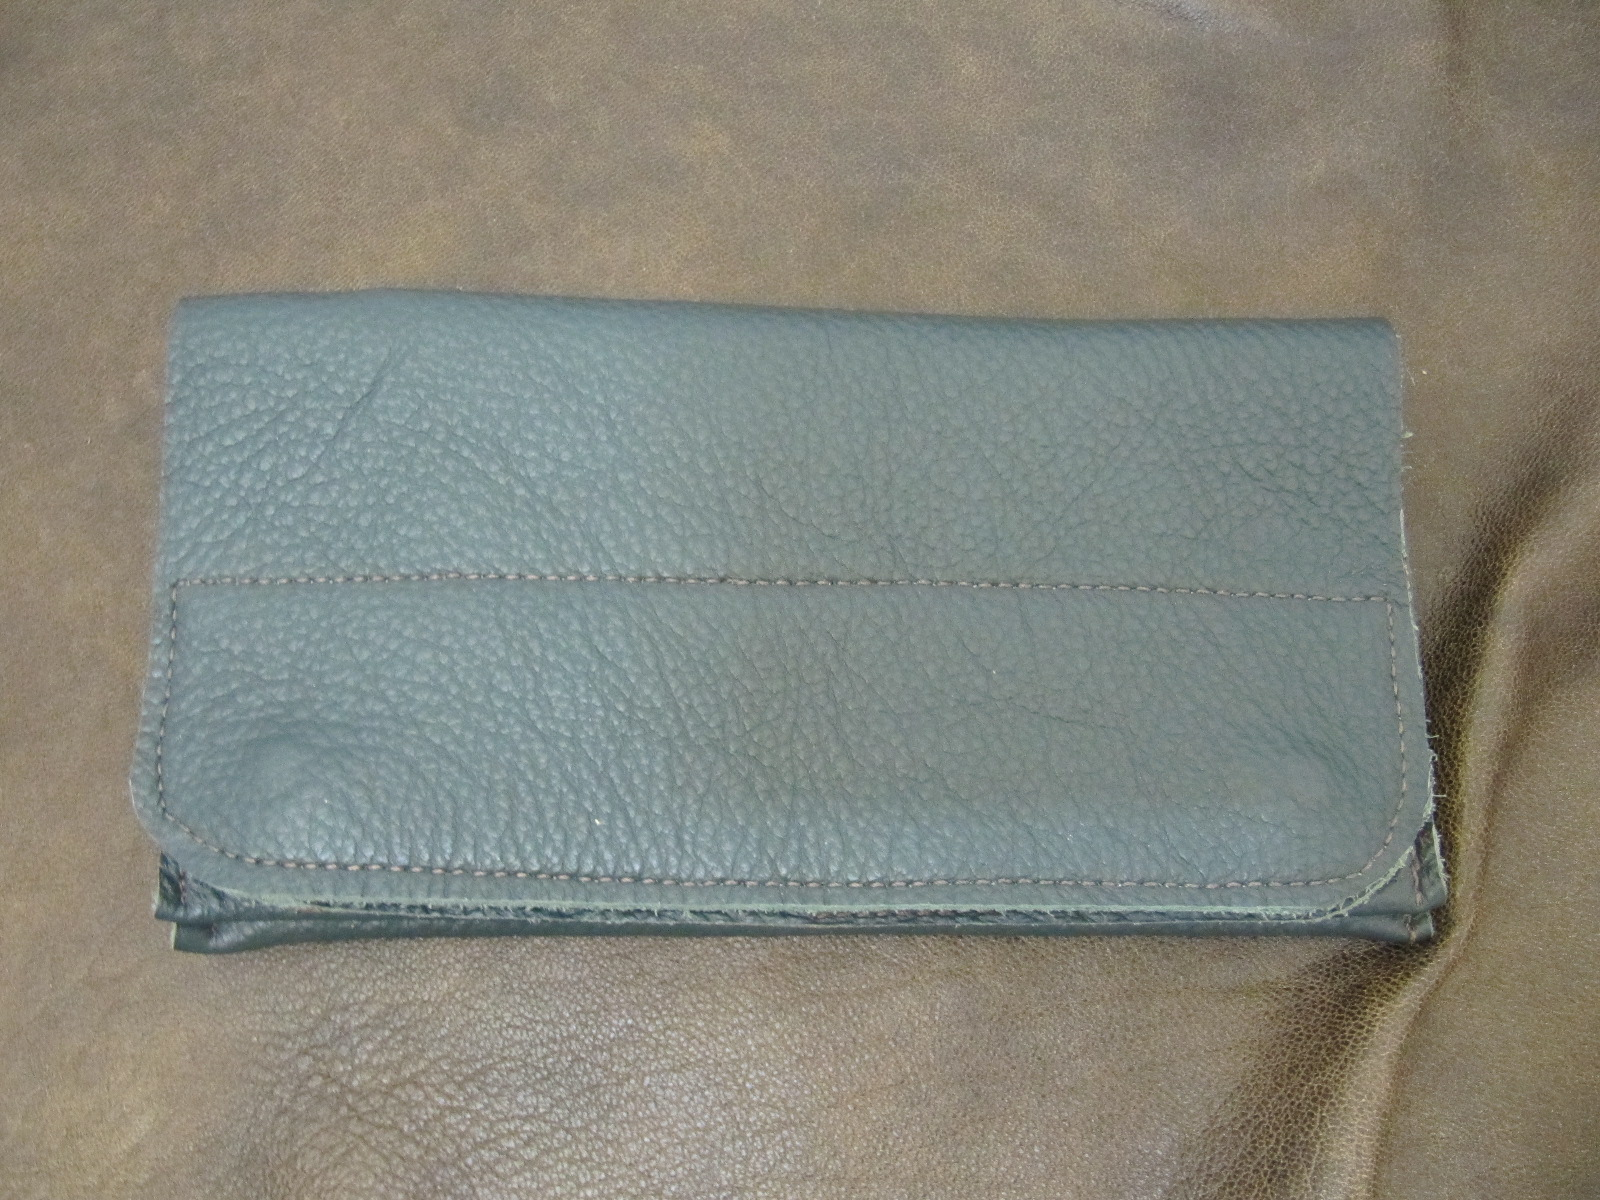 Forest Green Leather Wallet